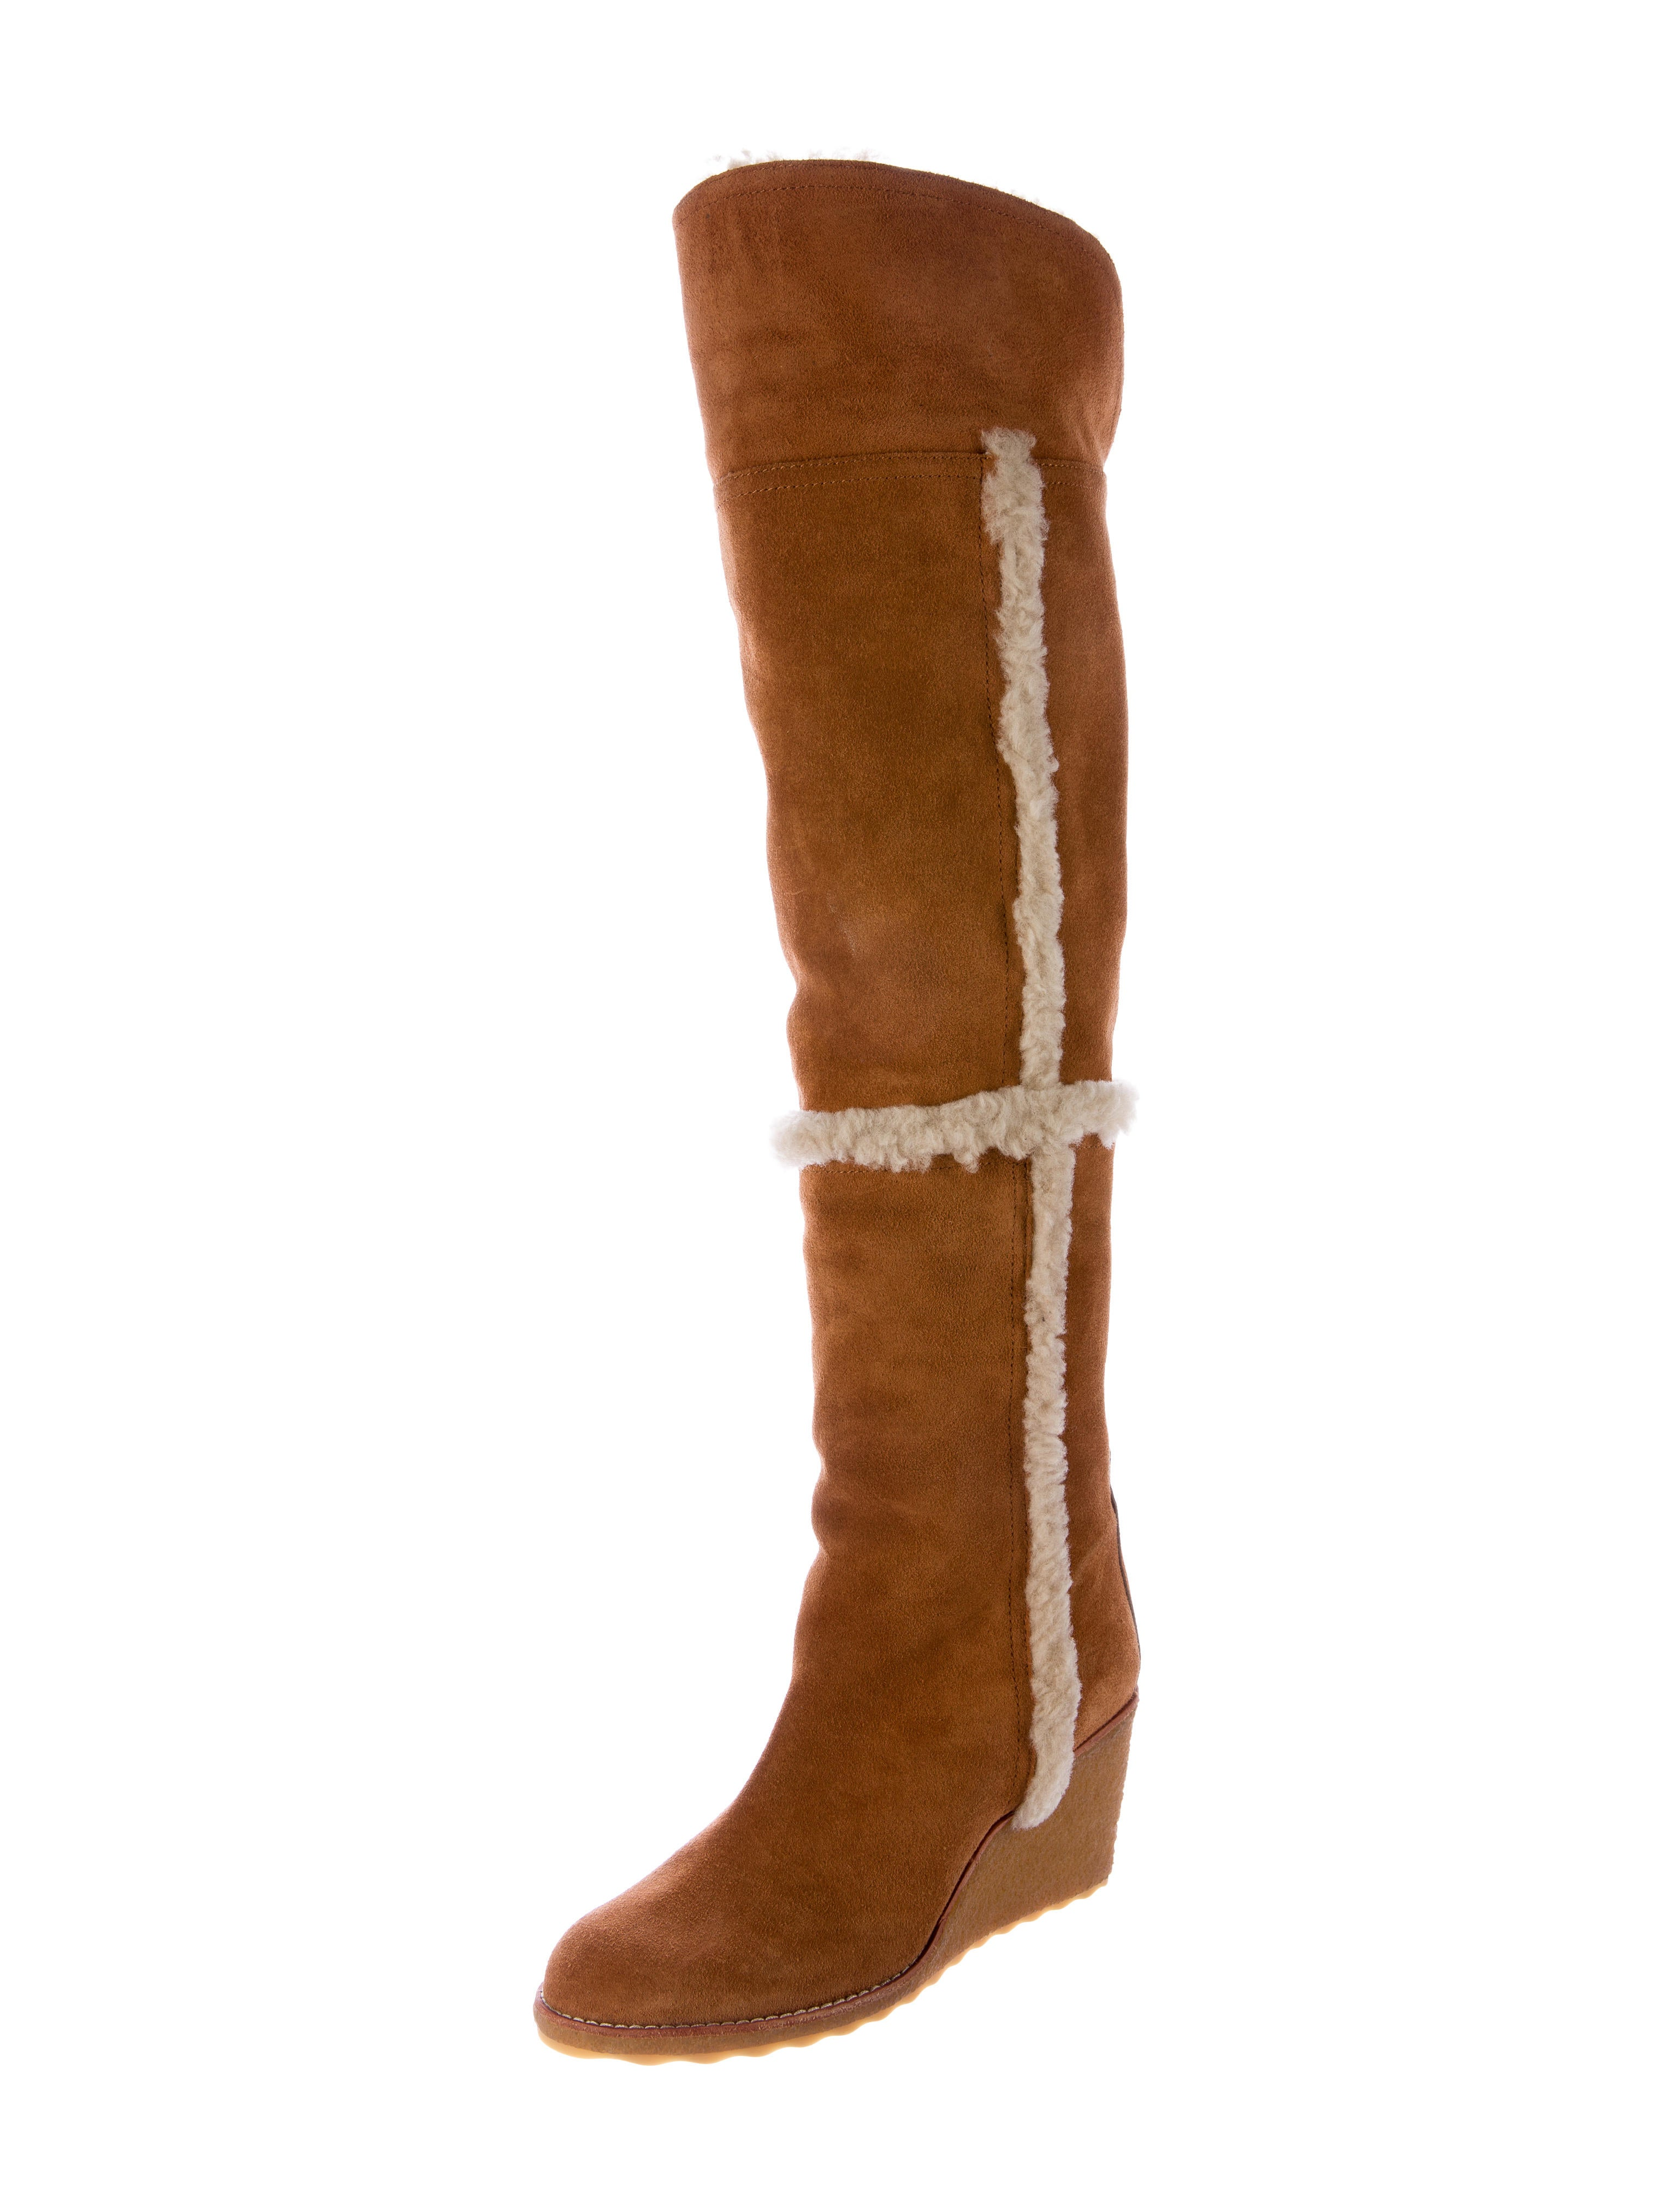 burch suede the knee wedge boots shoes